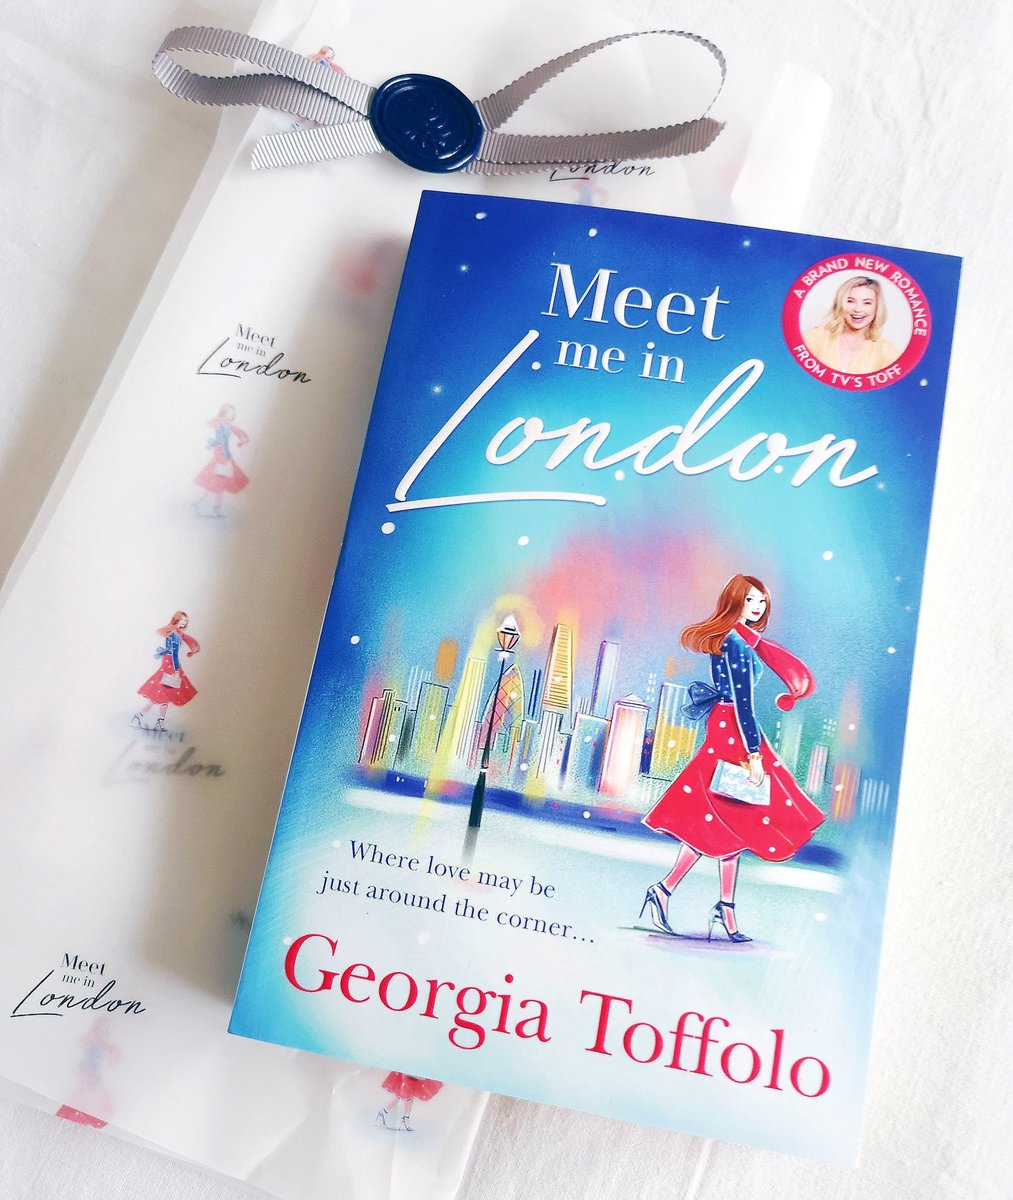 𝗠𝗘𝗘𝗧 𝗠𝗘 𝗜𝗡 𝗟𝗢𝗡𝗗𝗢𝗡 ❄️ written by @ToffTalks   Oh this book sounds fabulous &  just look how pretty she is! 😍  Thank you Kirsty @MillsandBoon for my #gifted copy which came  so beautifully wrapped!    Due out Oct 15th. #MeetMeInLondon  #bookmail #books 📚✨ https://t.co/eTo03REgvT